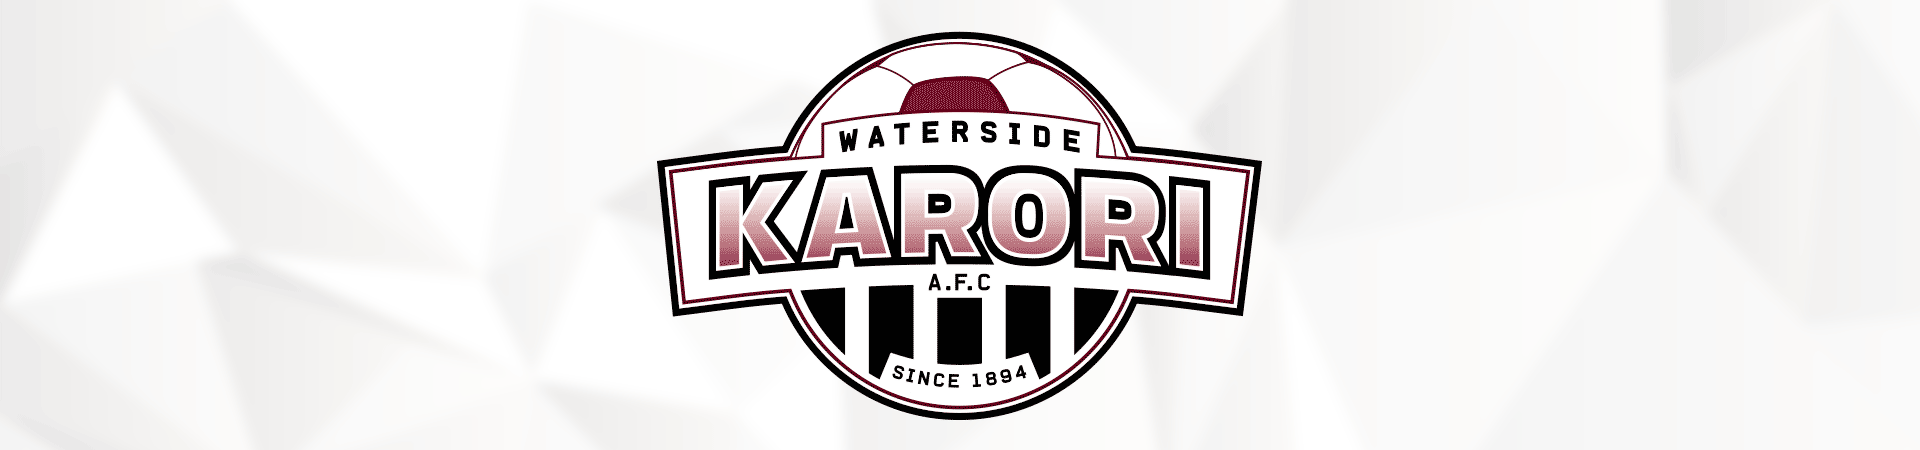 Club Shop Waterside Karori